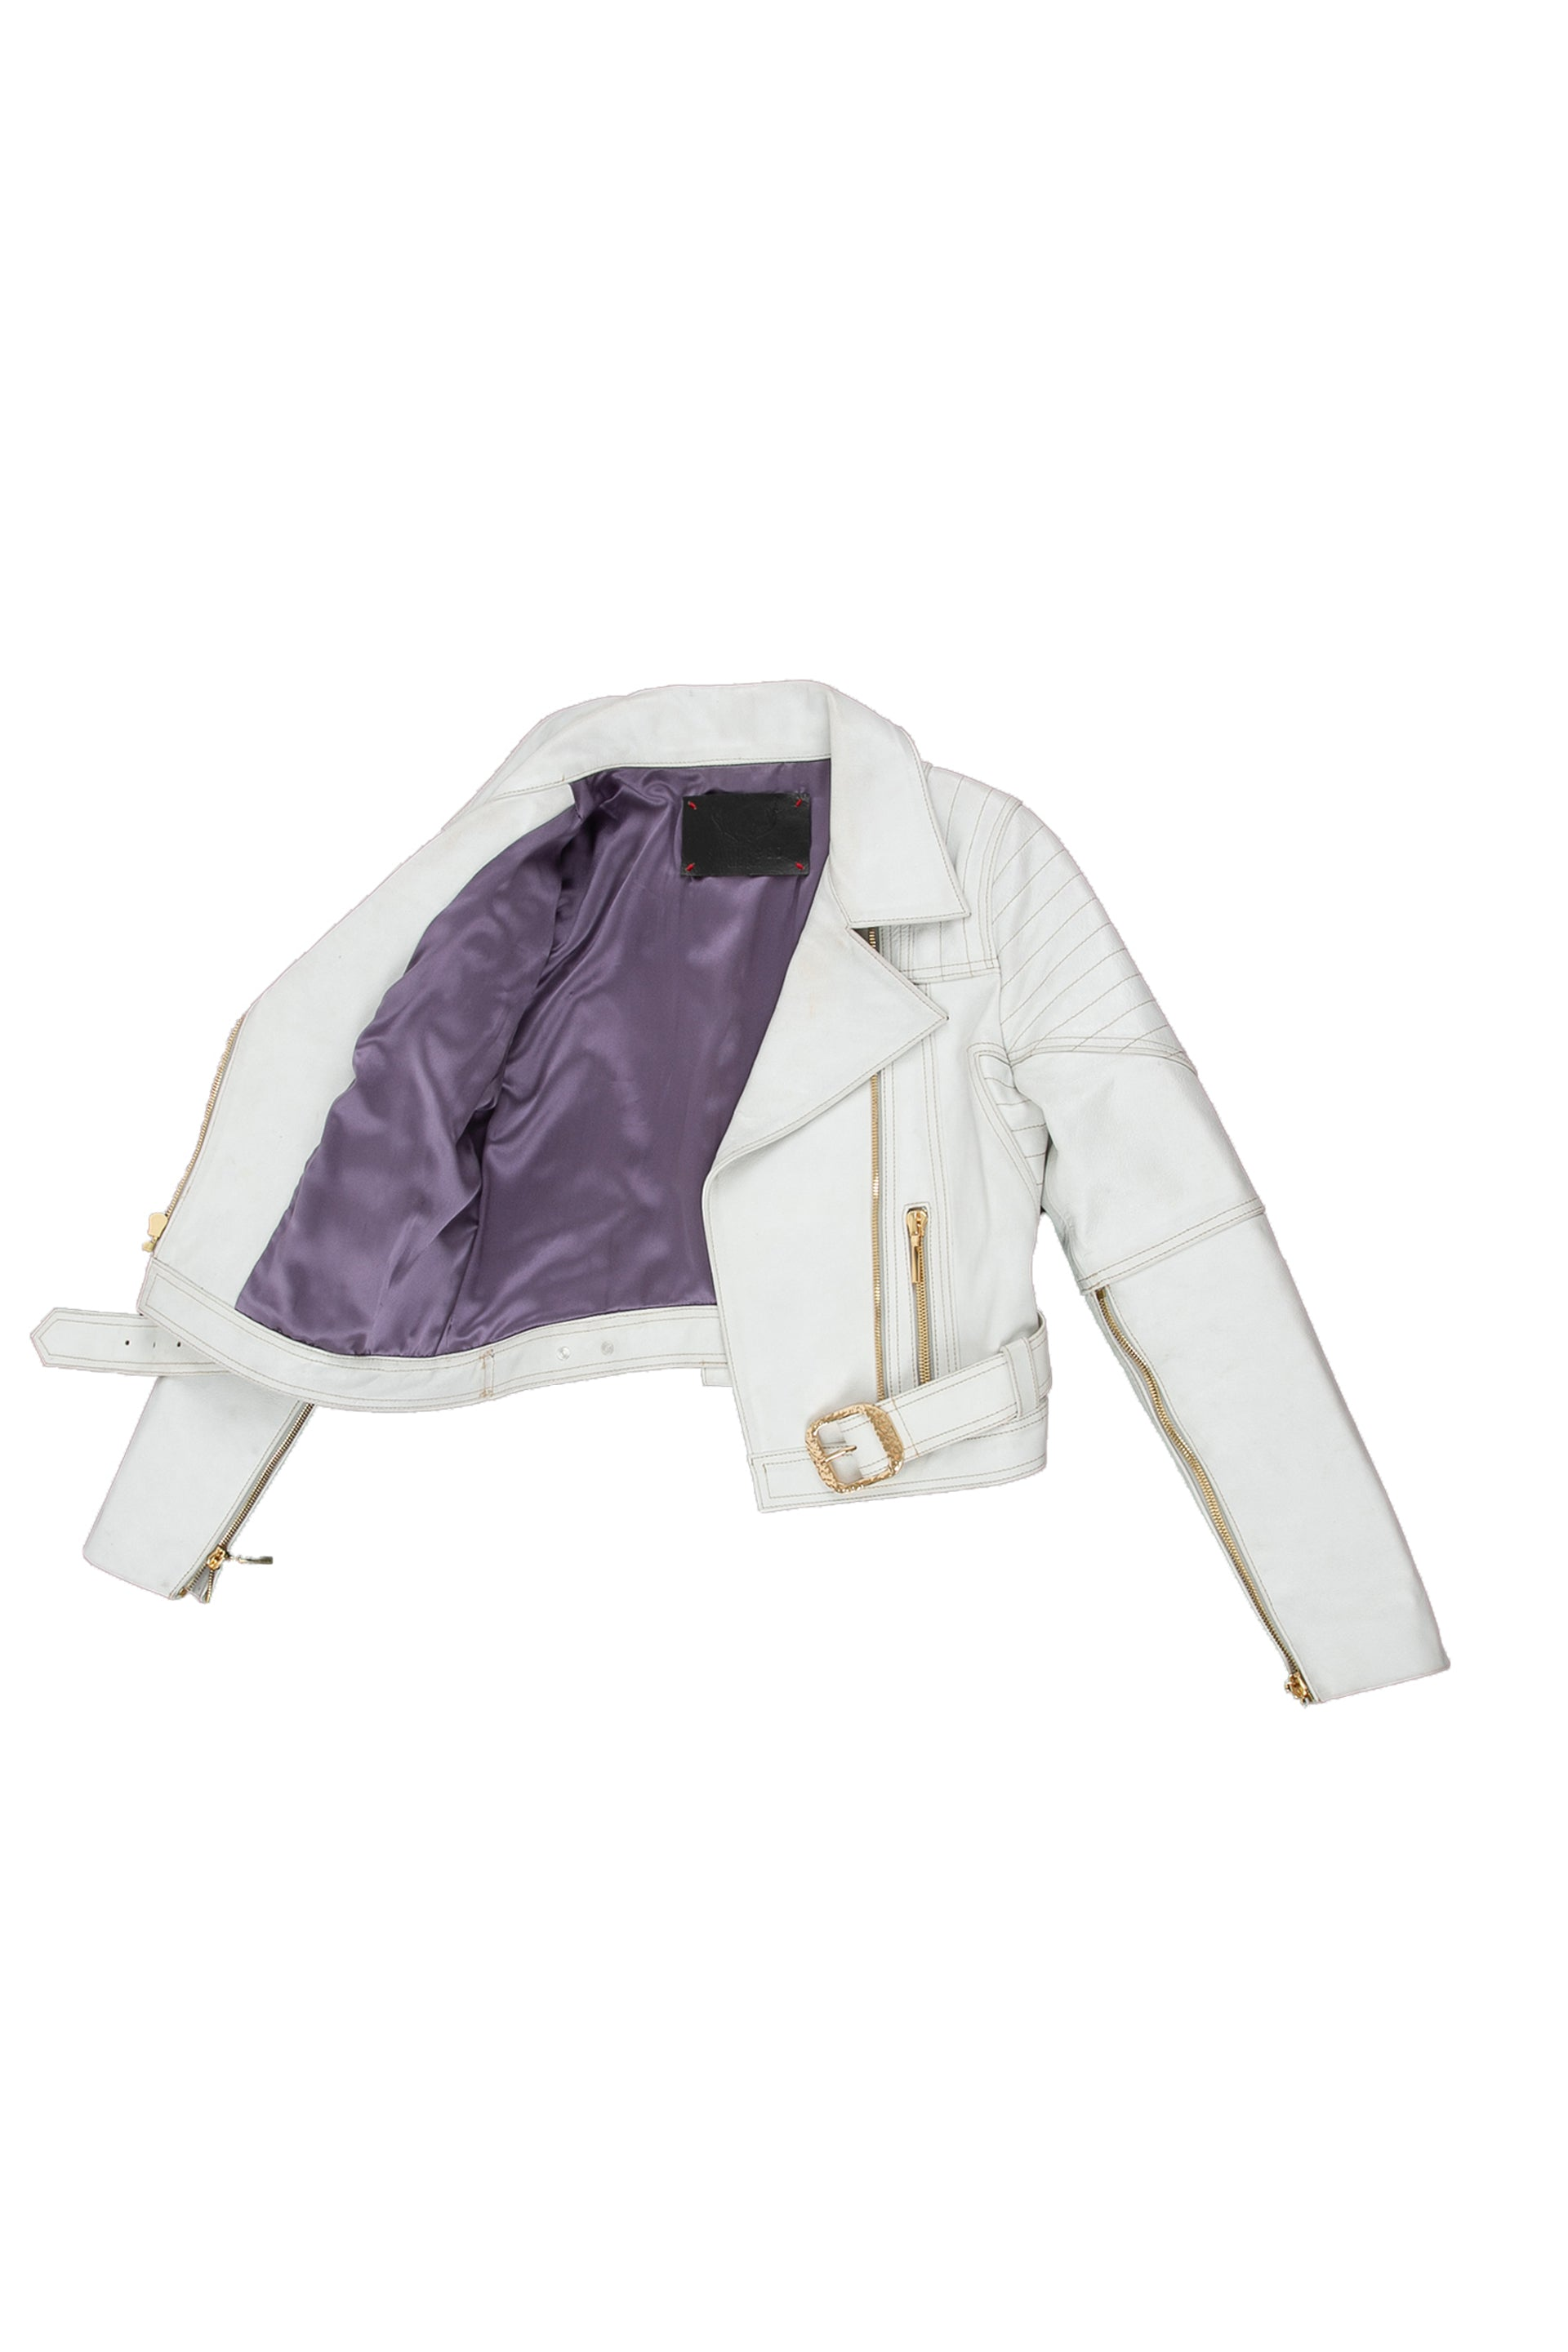 Inside of Prince leather jacket